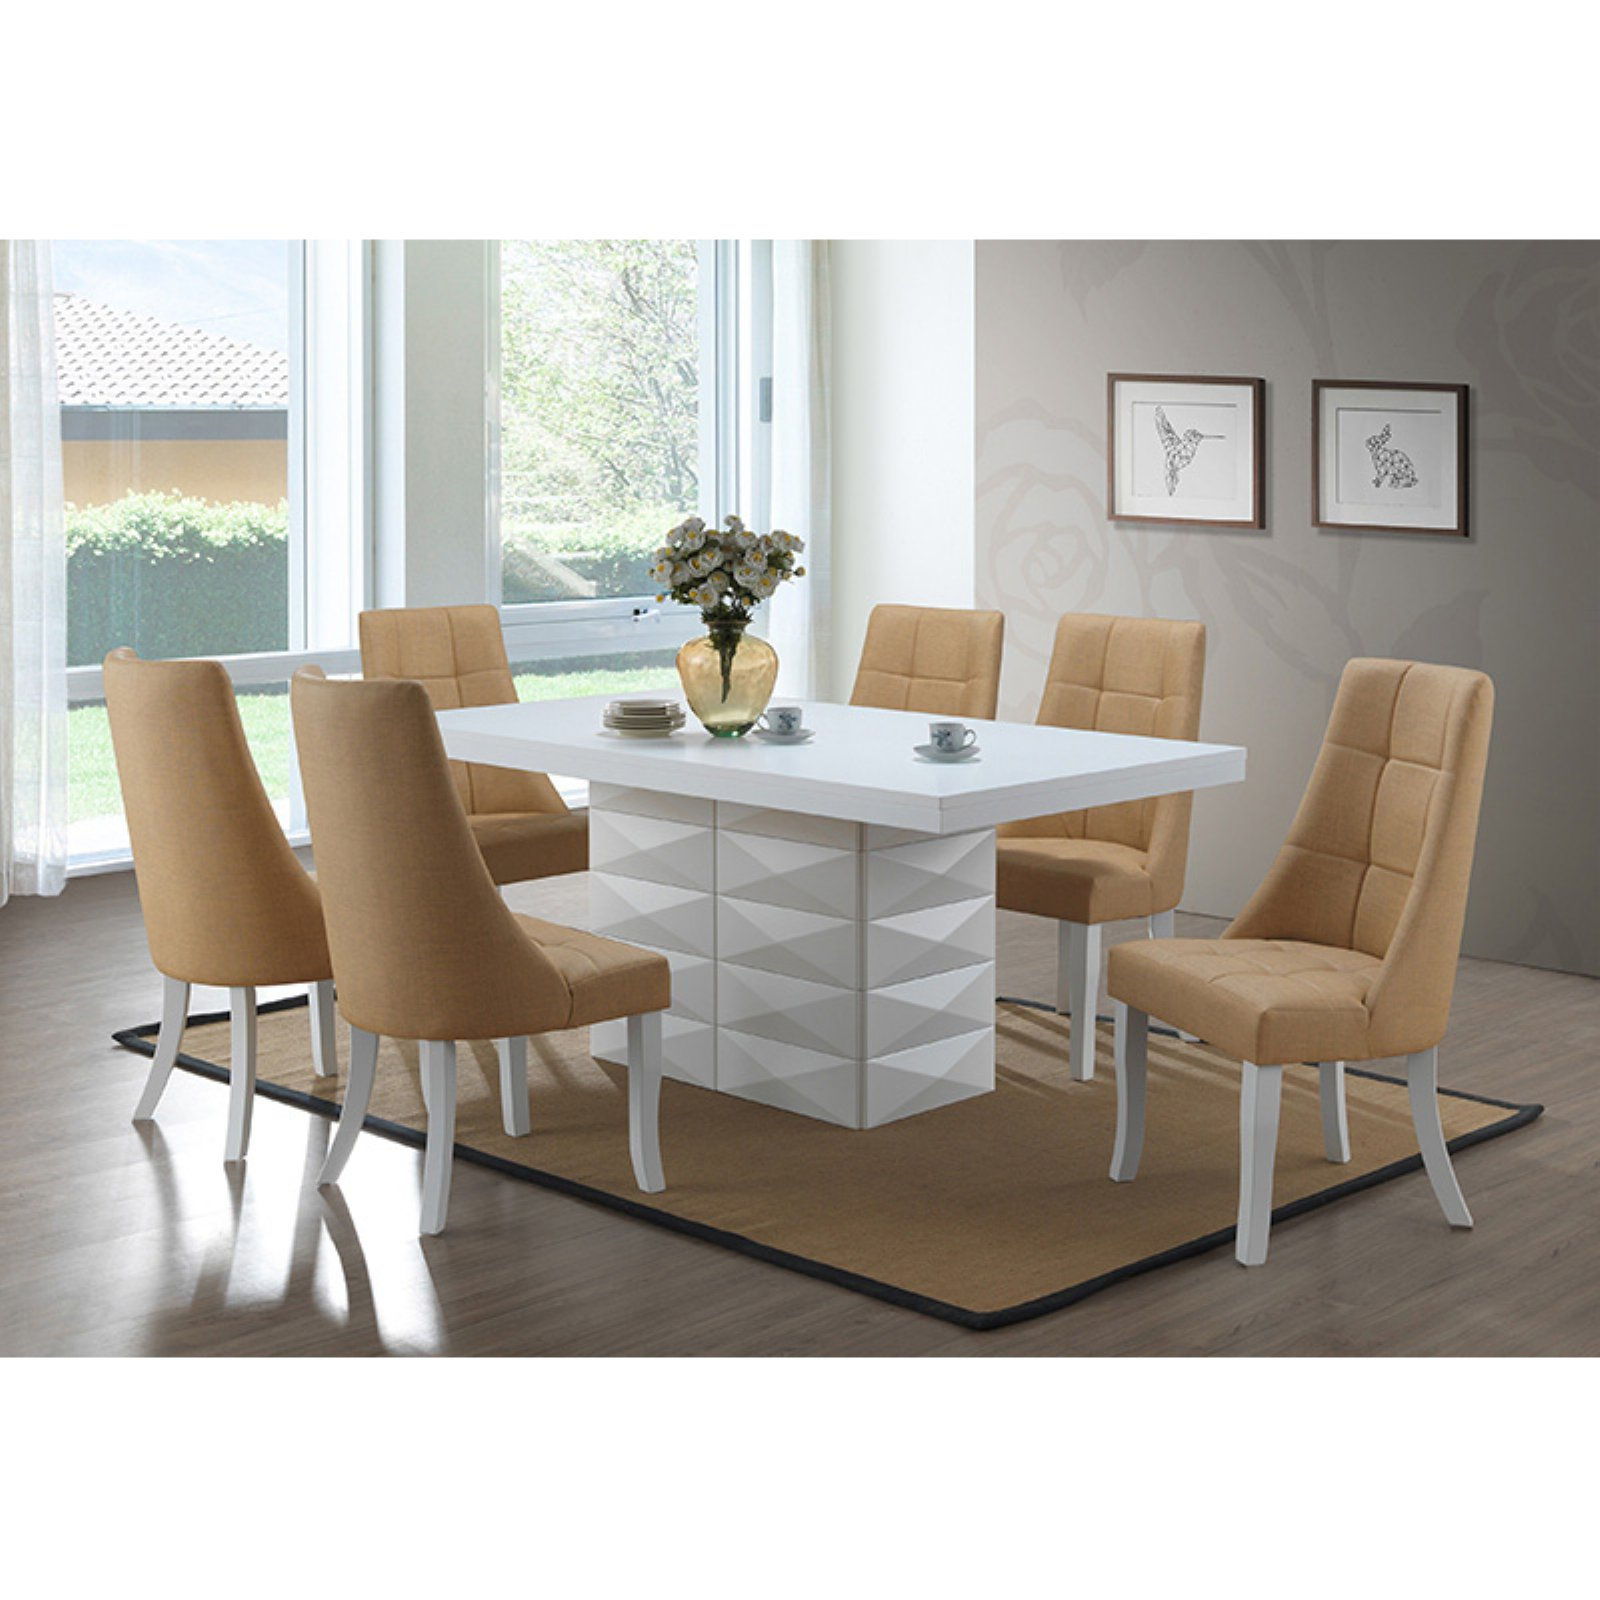 33+ Set of 6 dining chairs white Trend